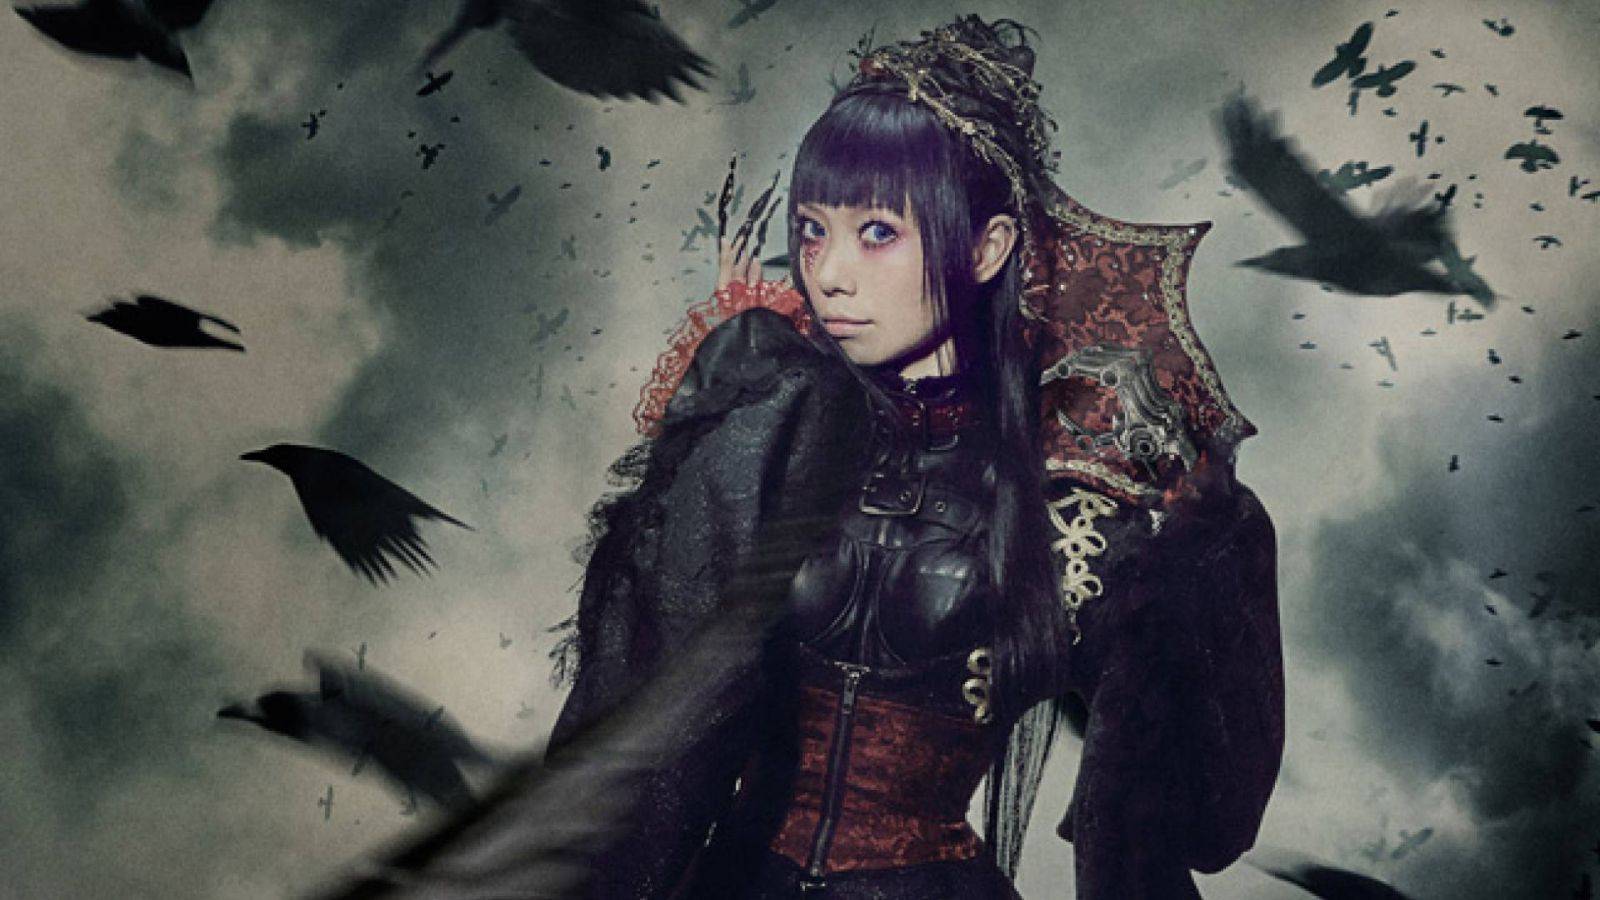 Yousei Teikoku © 2017 Yousei Teikoku. Provided by RESONANCE Media.